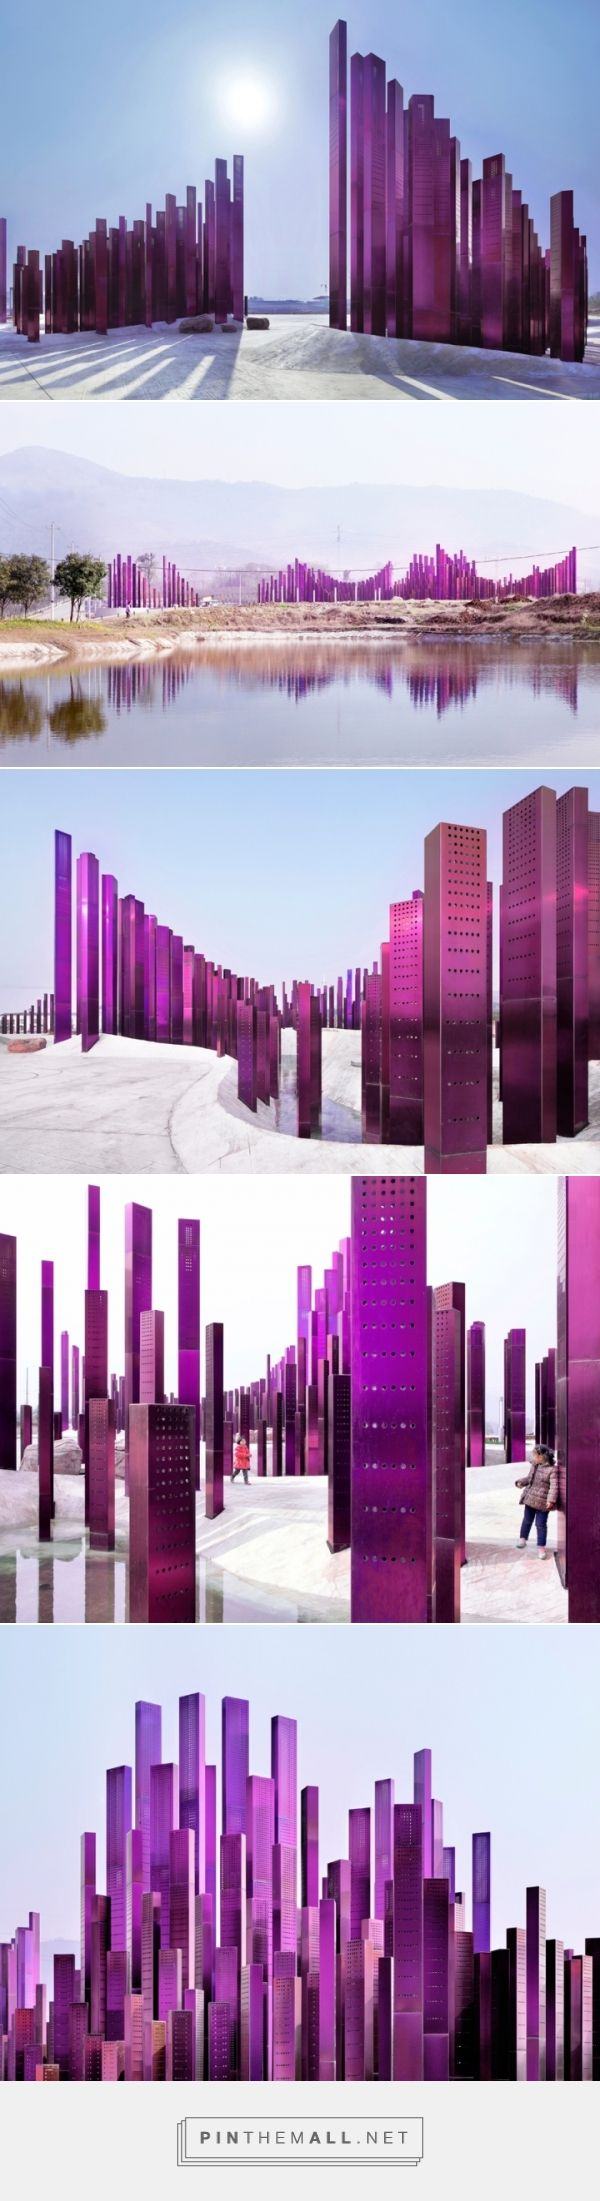 Sound Wave Installation by Penda at Myrtle Tree Garden, Xiangyang – China »  Retail Design Blog - created via http://pinthemall.net